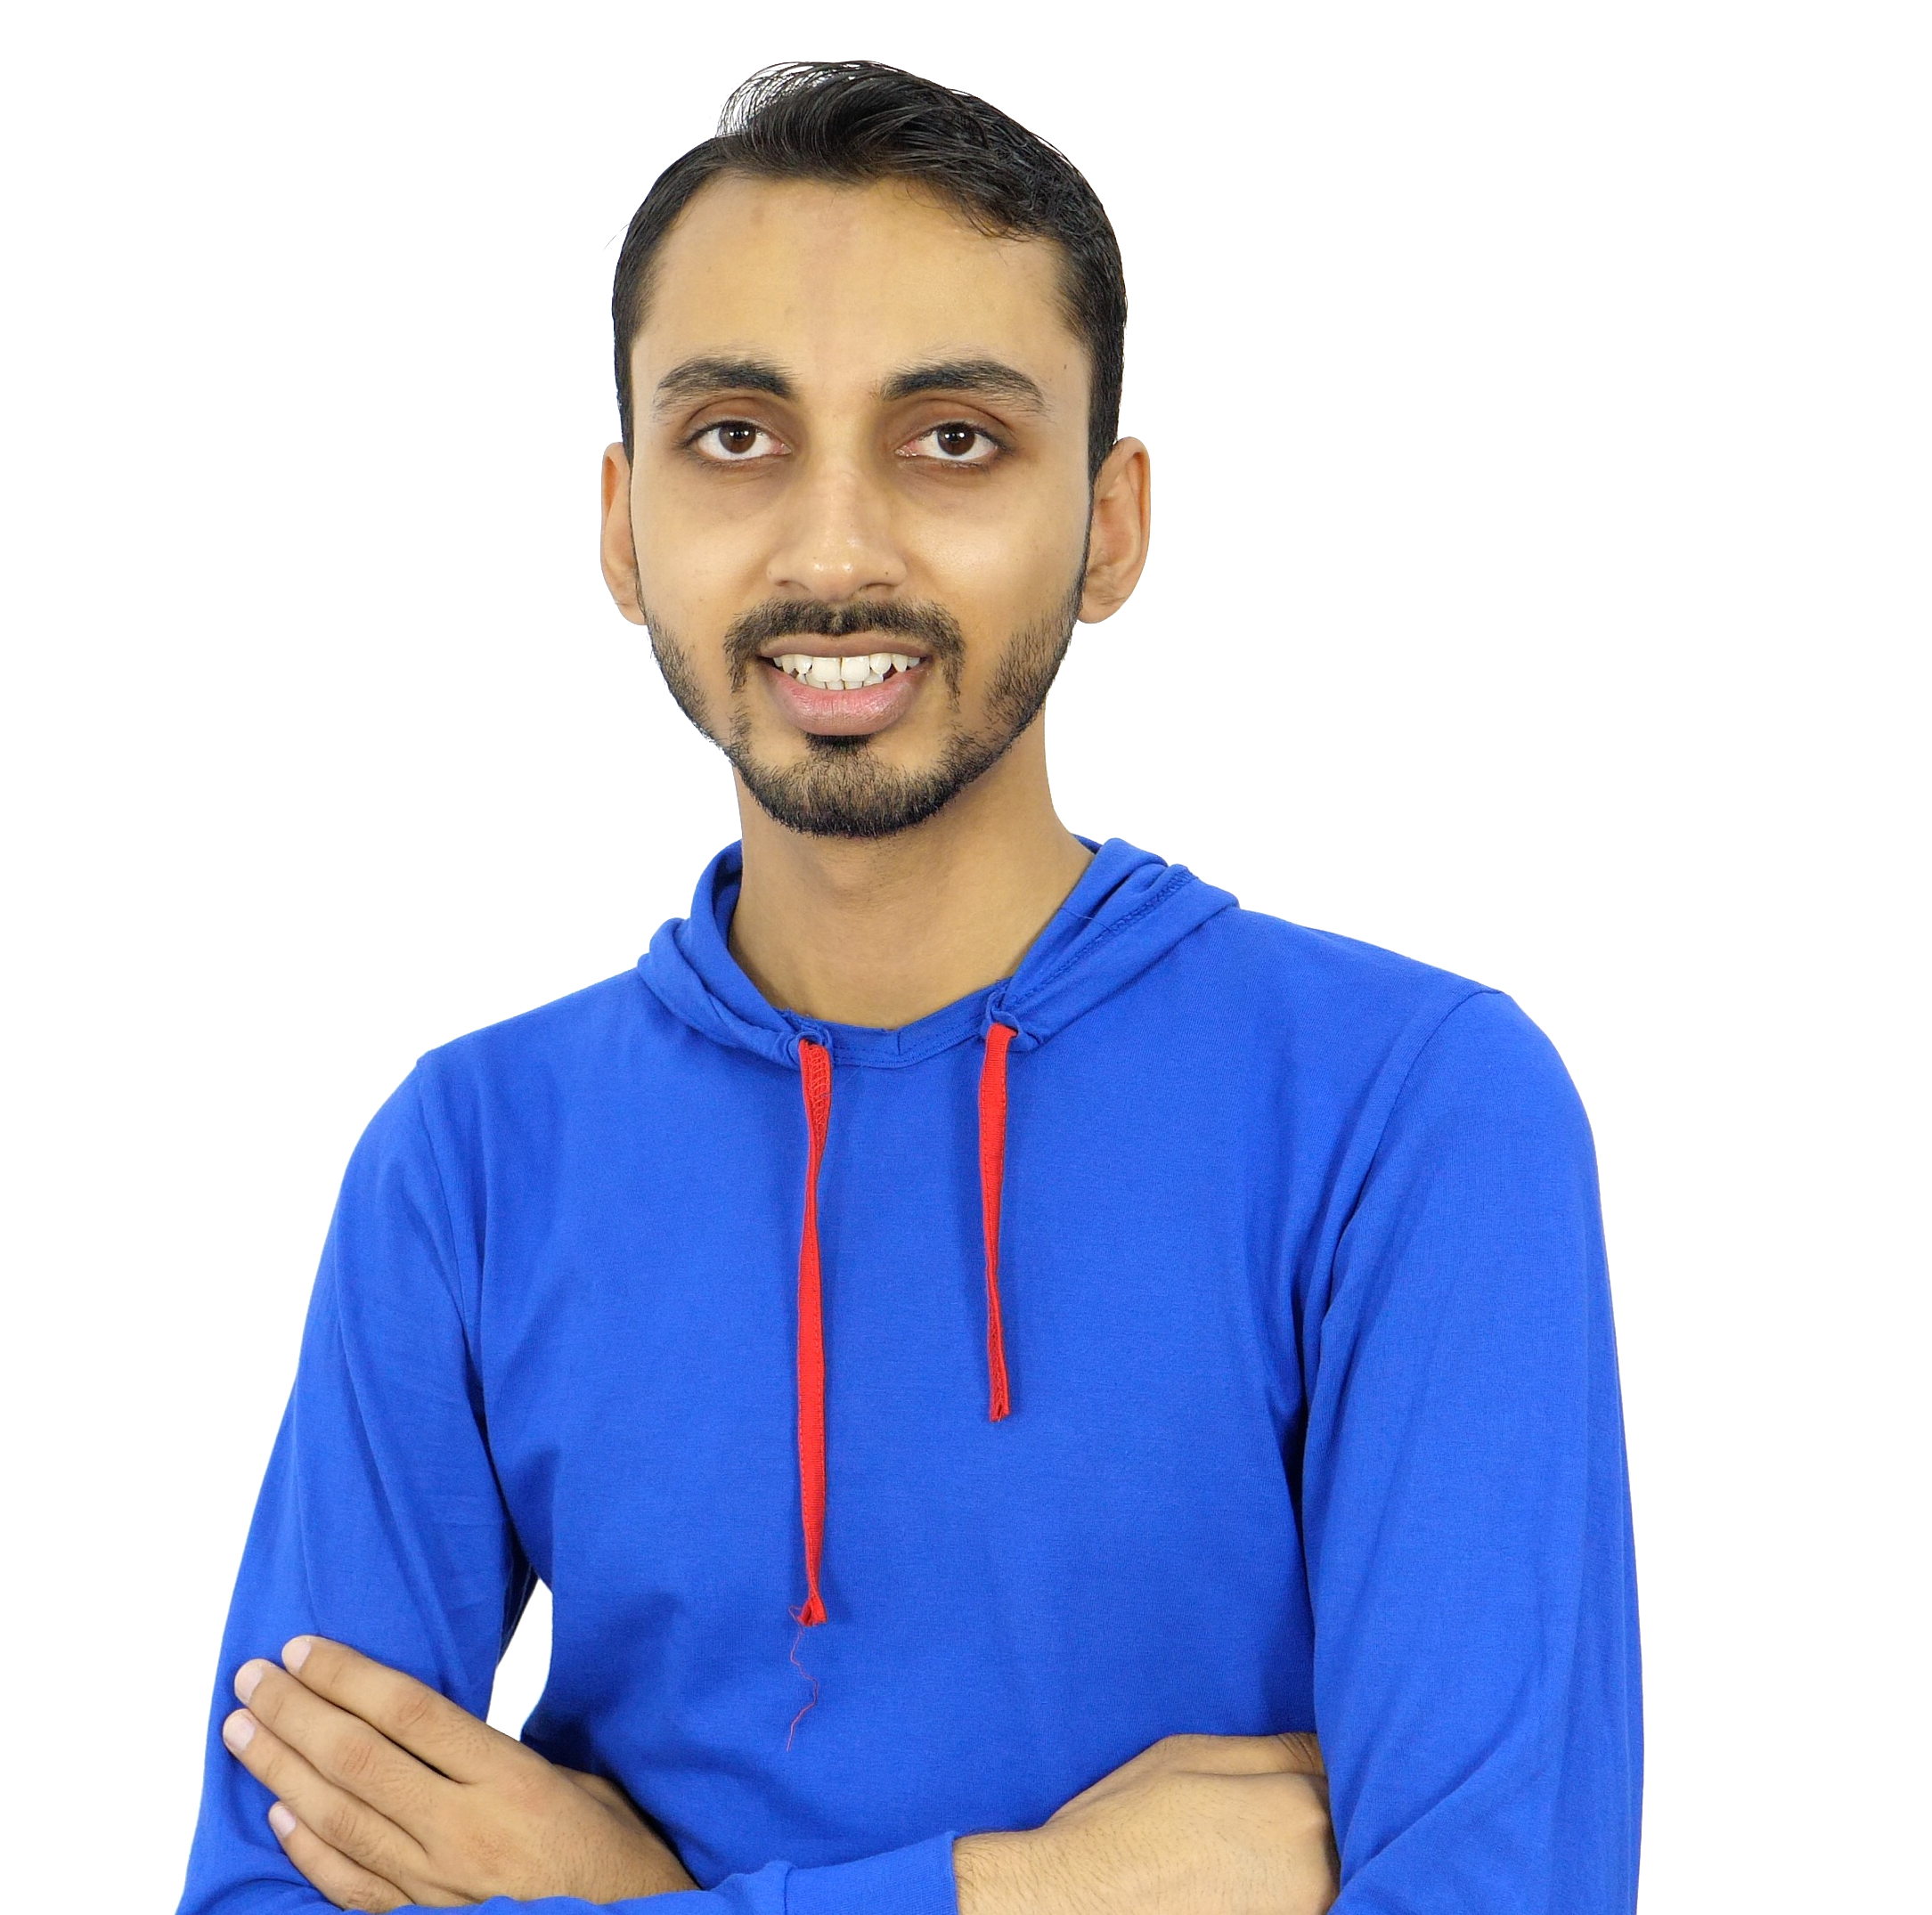 Rahul Dubey Online - Learn Digital with Rahul